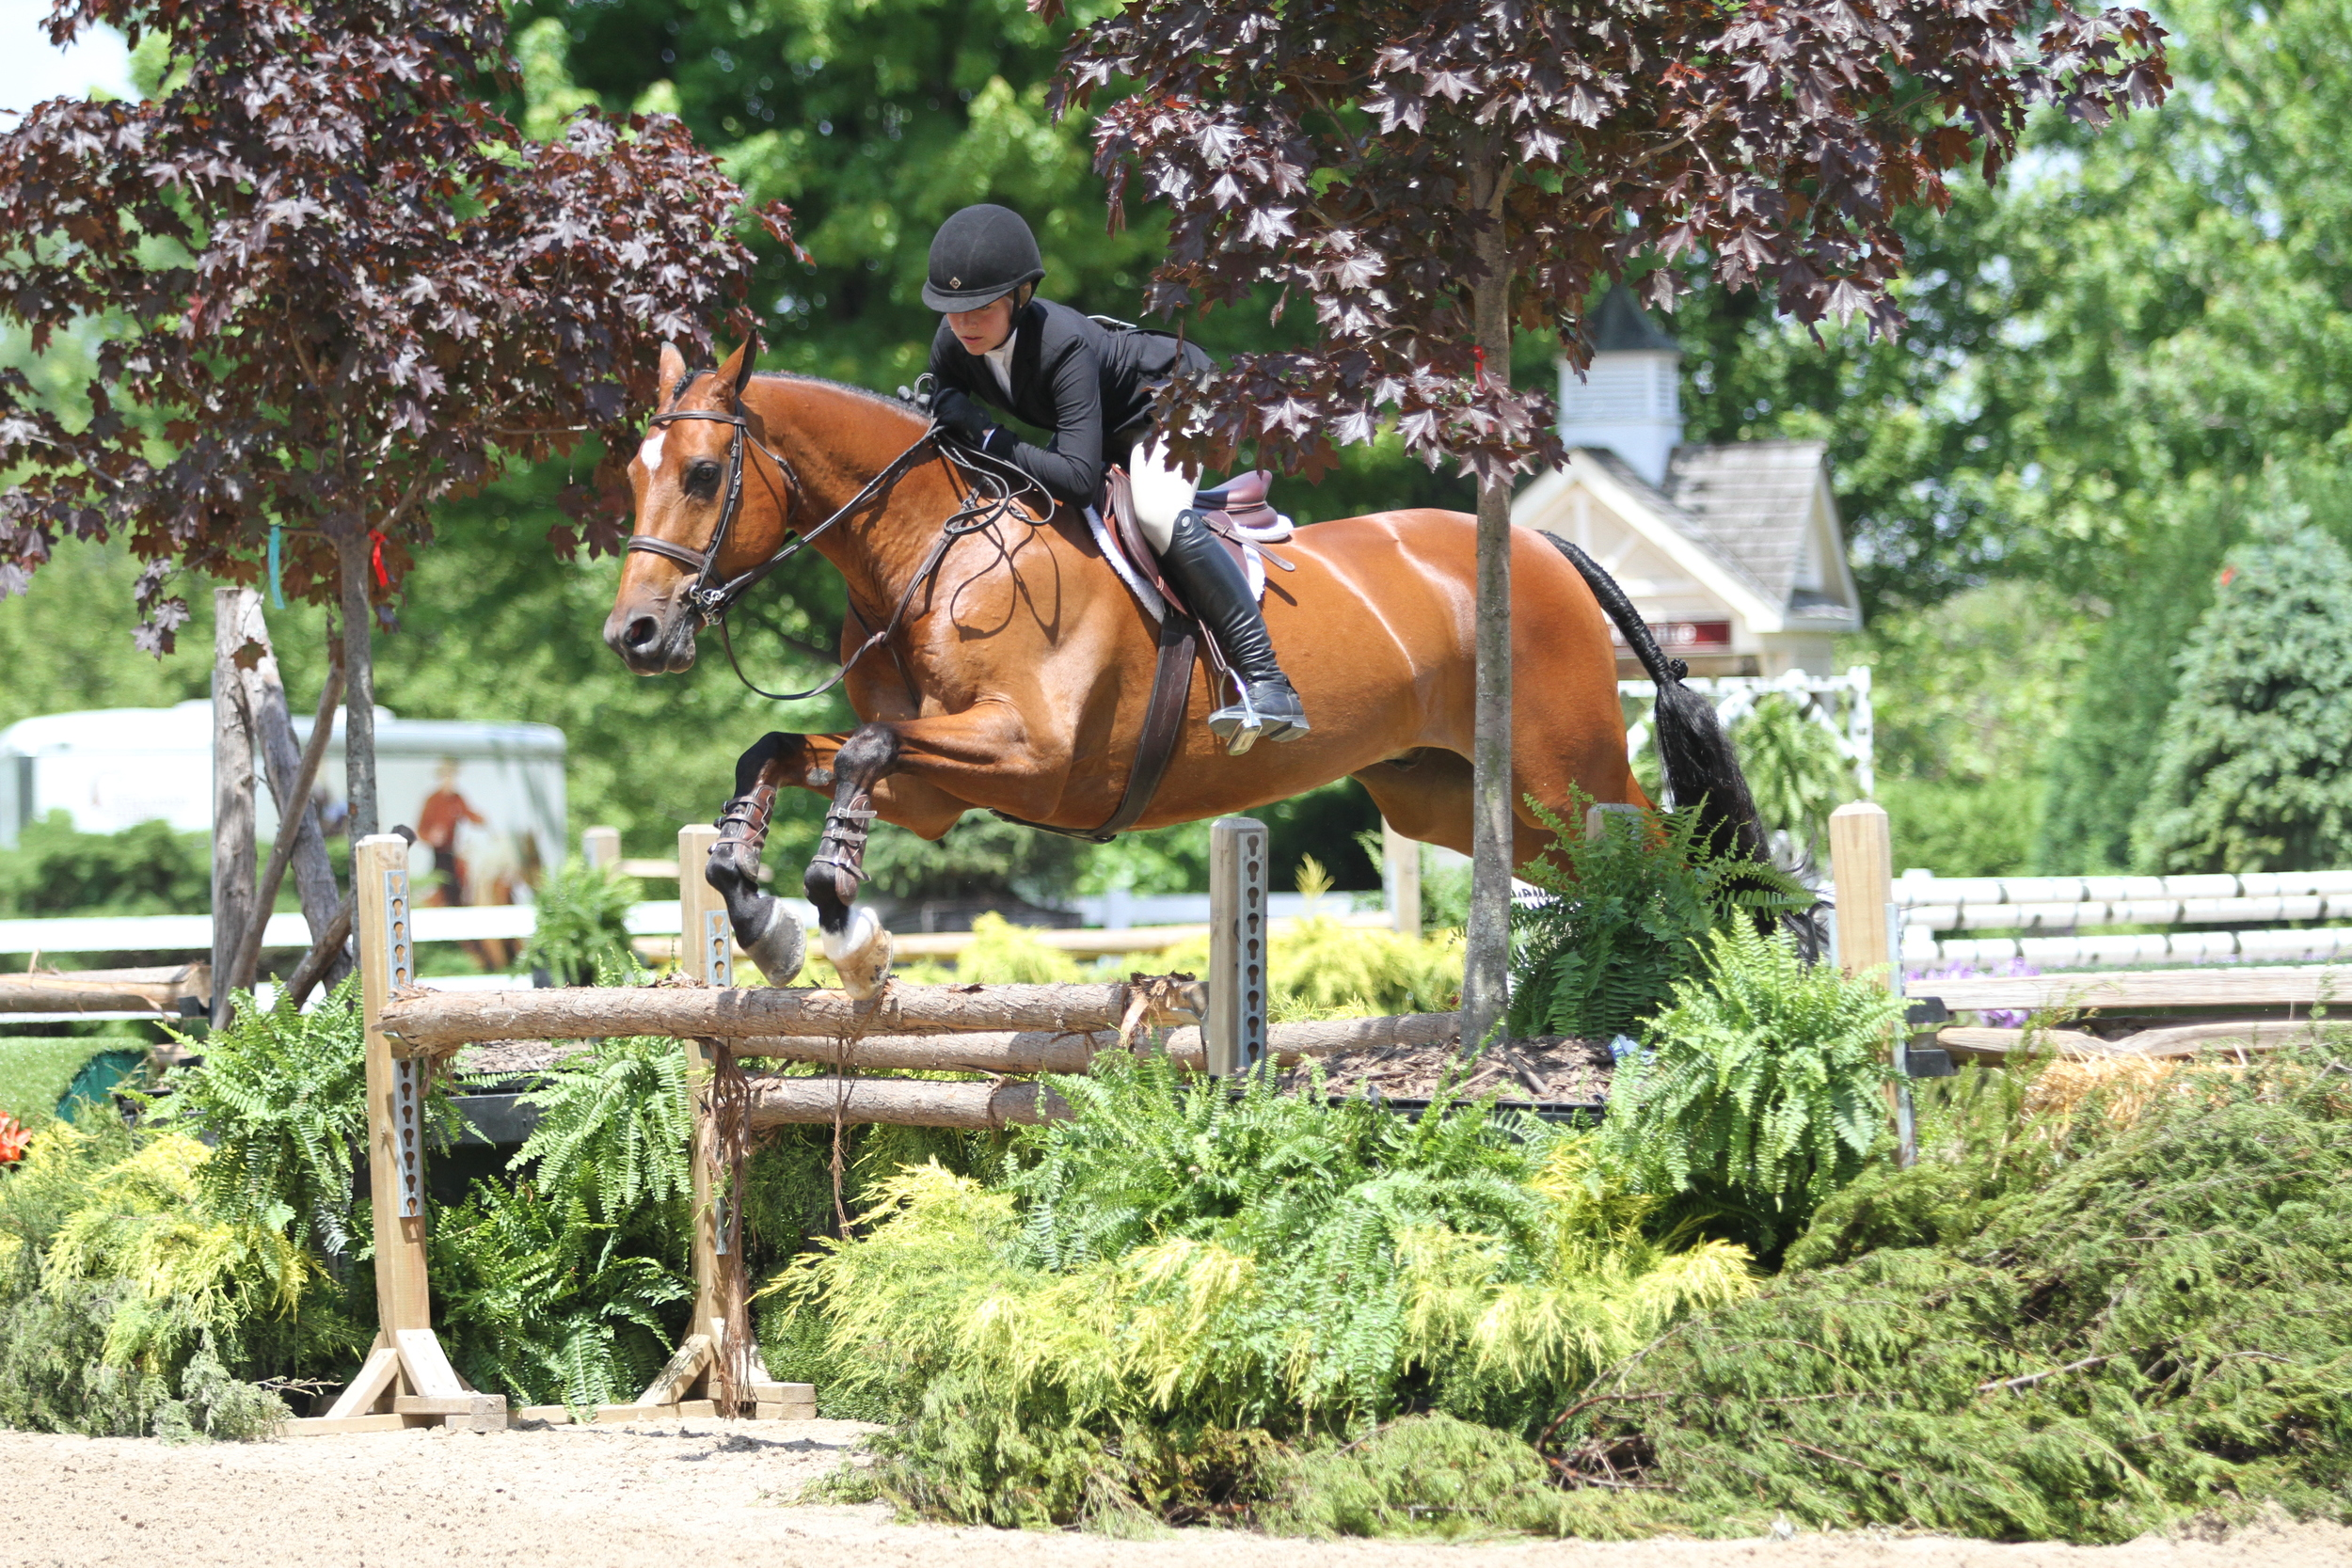 """NCEA Hunter Seat 3'3"""" Junior Medal    Charlotte Novy grabbed the top spot in the NCEA Hunter Seat 3'3"""" Junior Medal equitation class with her horse Cimberly."""